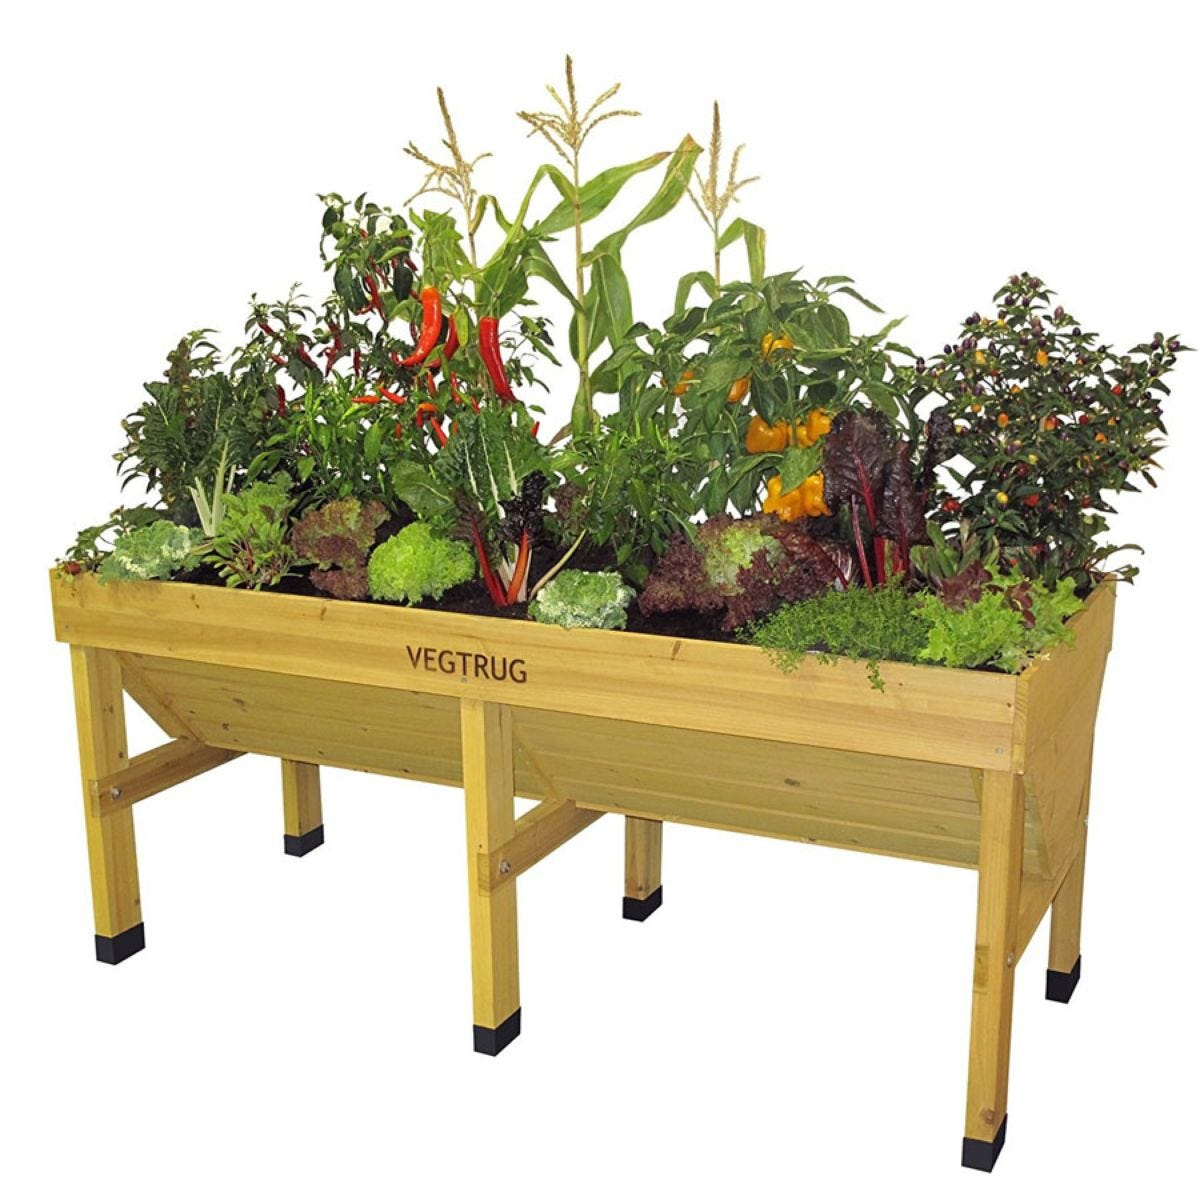 VegTrug Medium Classic Raised Planter – Natural